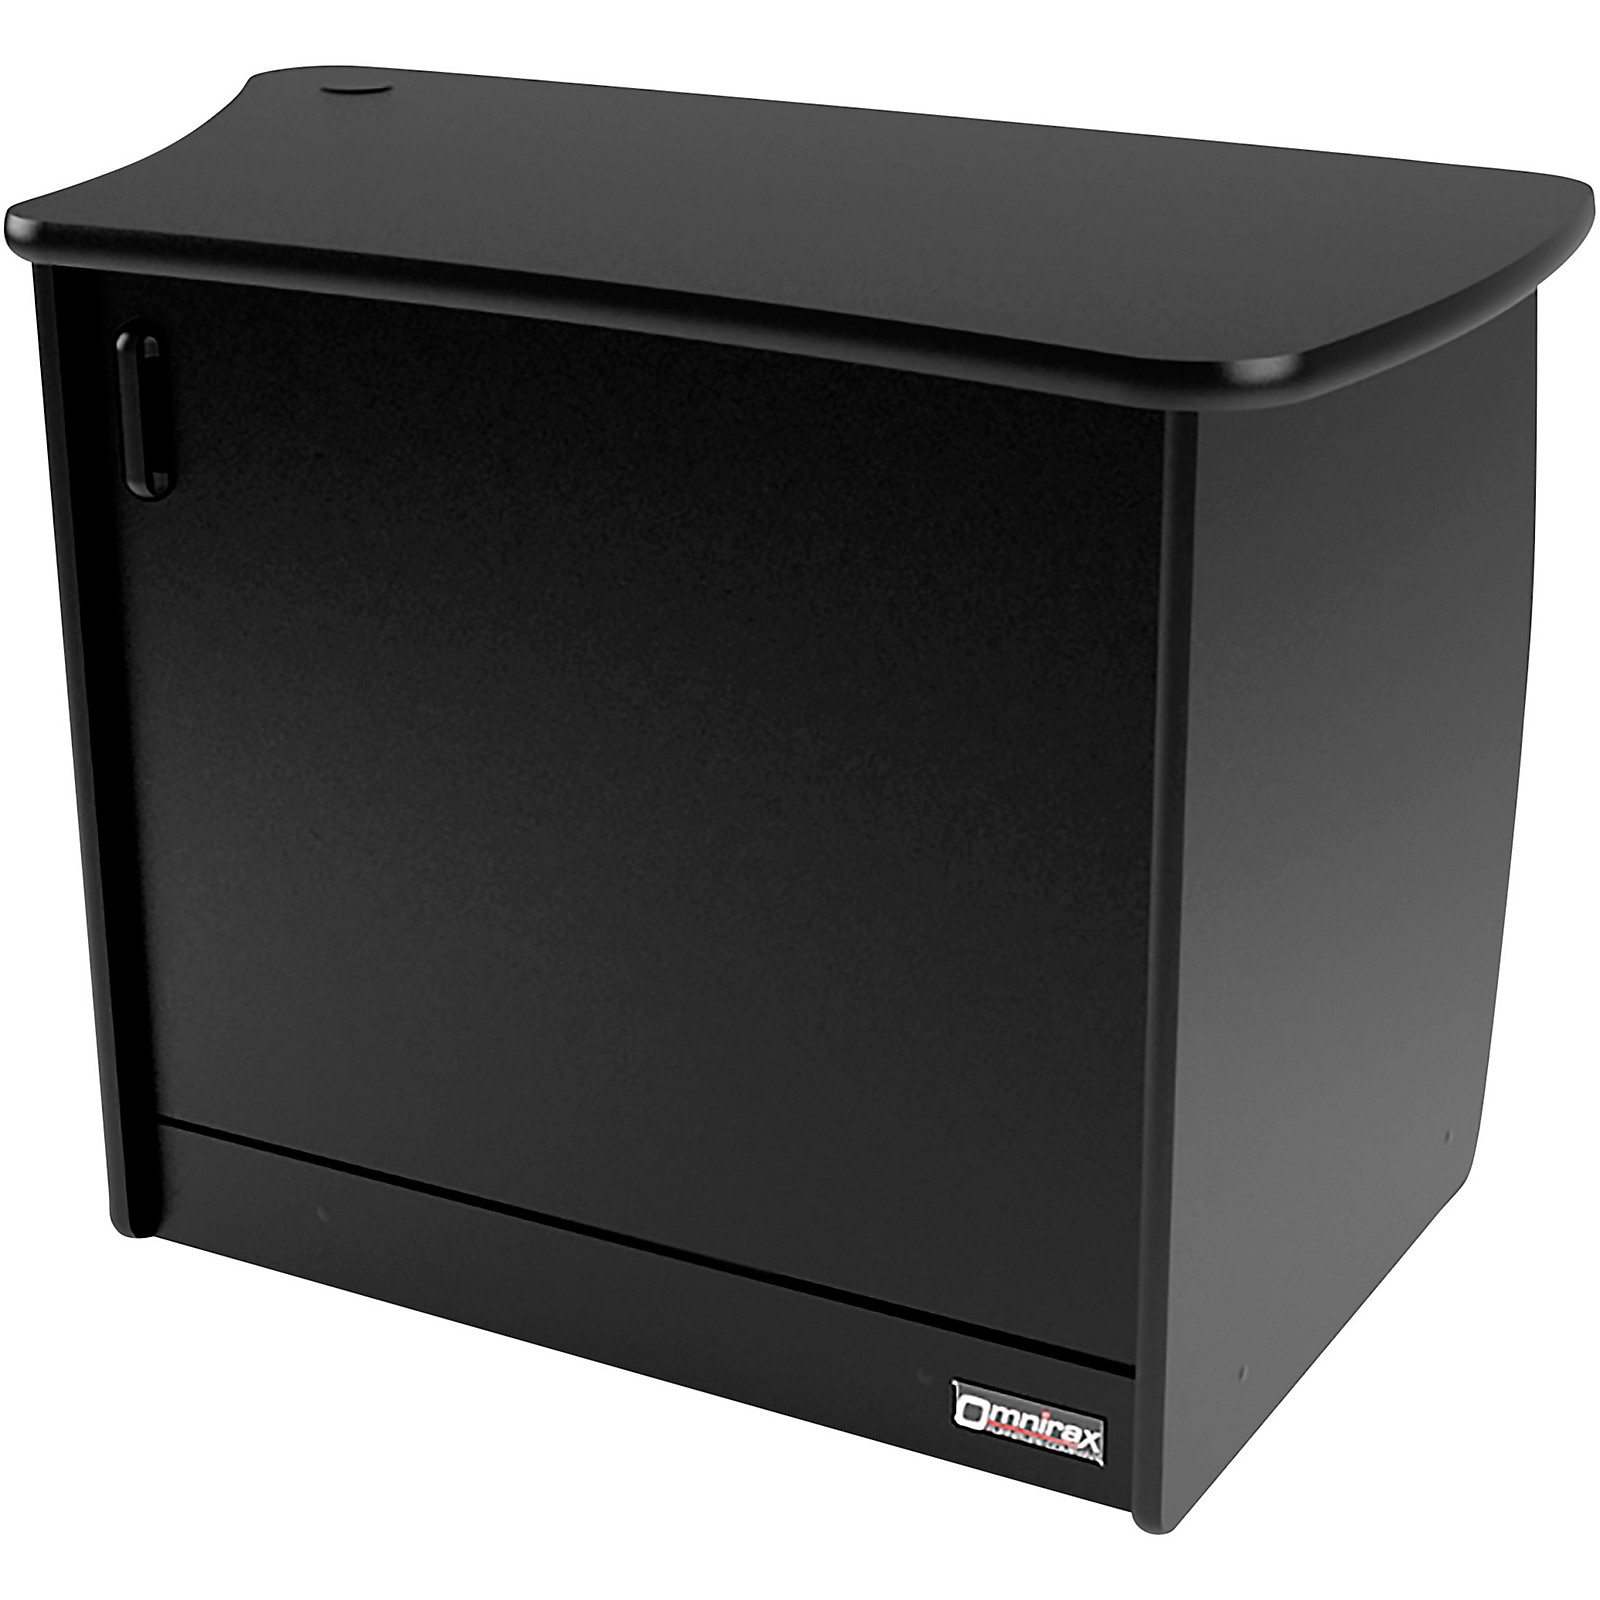 Omnirax OM13DR 13-Rackspace, CPU Cubby, and Door to Fit on the Right Side of the OmniDesk - Black